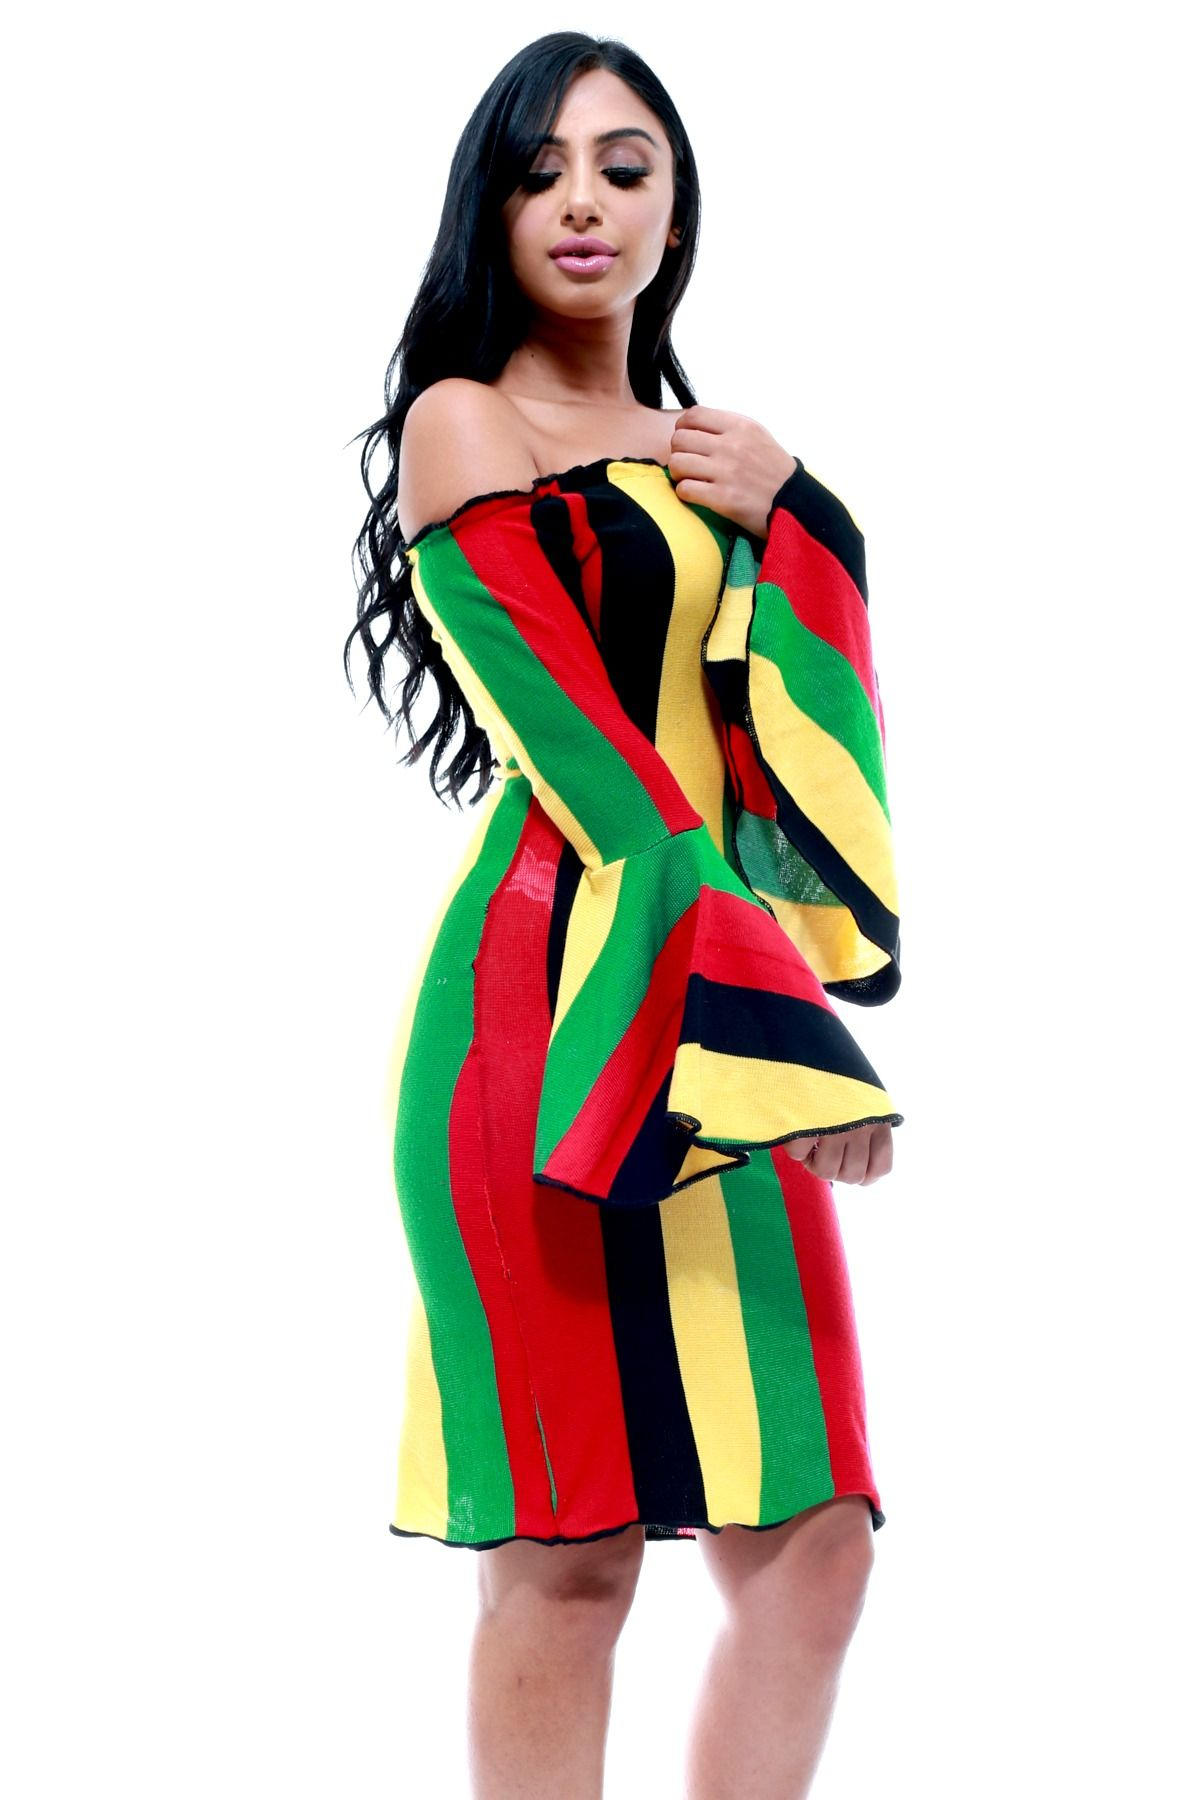 Latest Trend Rasta Dress Jamaican Clothing For Women Update Rasta Dress Jamaican Clothing Rastafarian Outfits